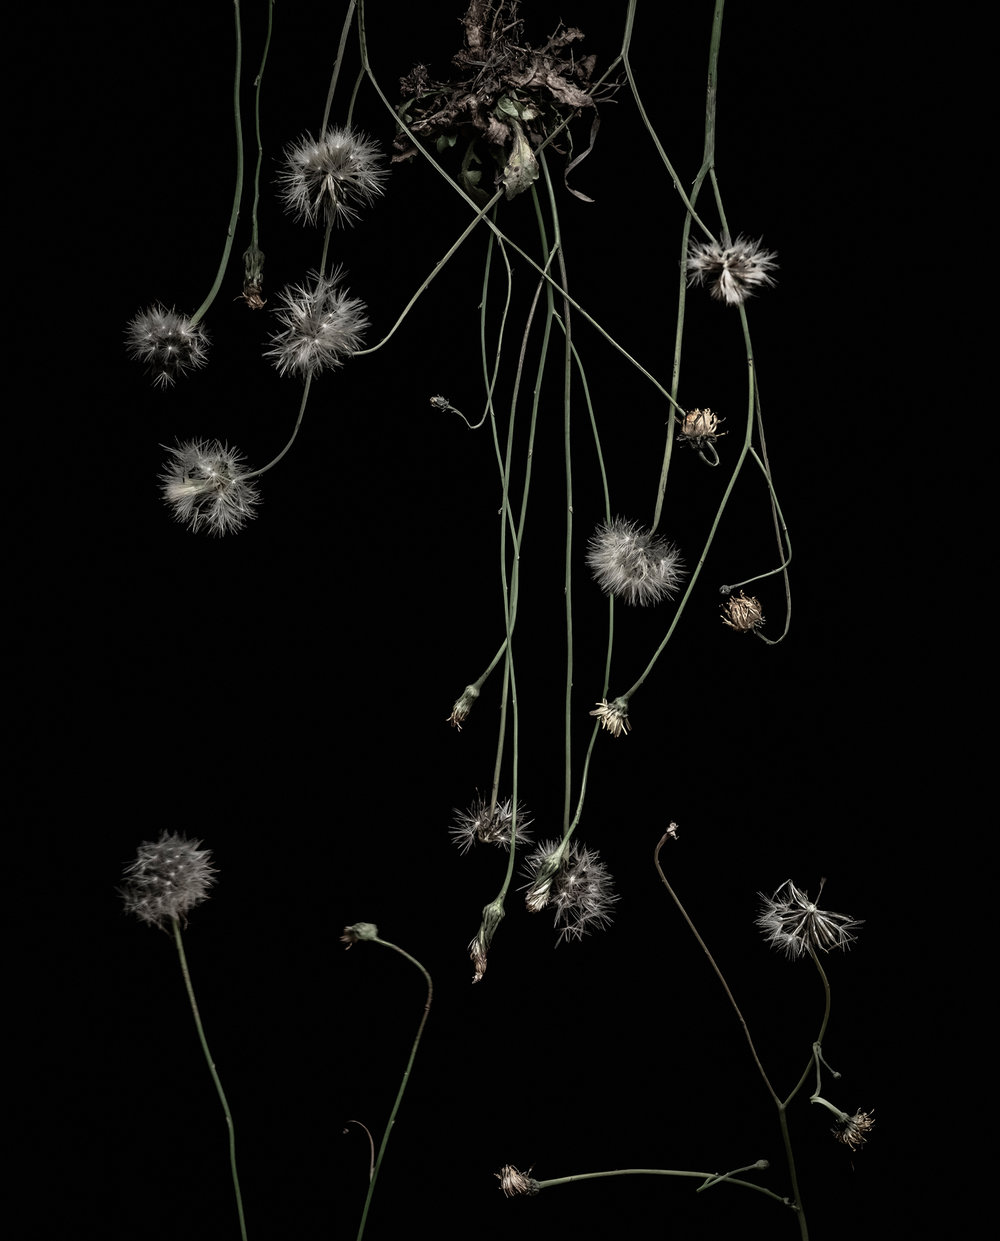 Project-D-clarehodgins-white-dandelions.jpg